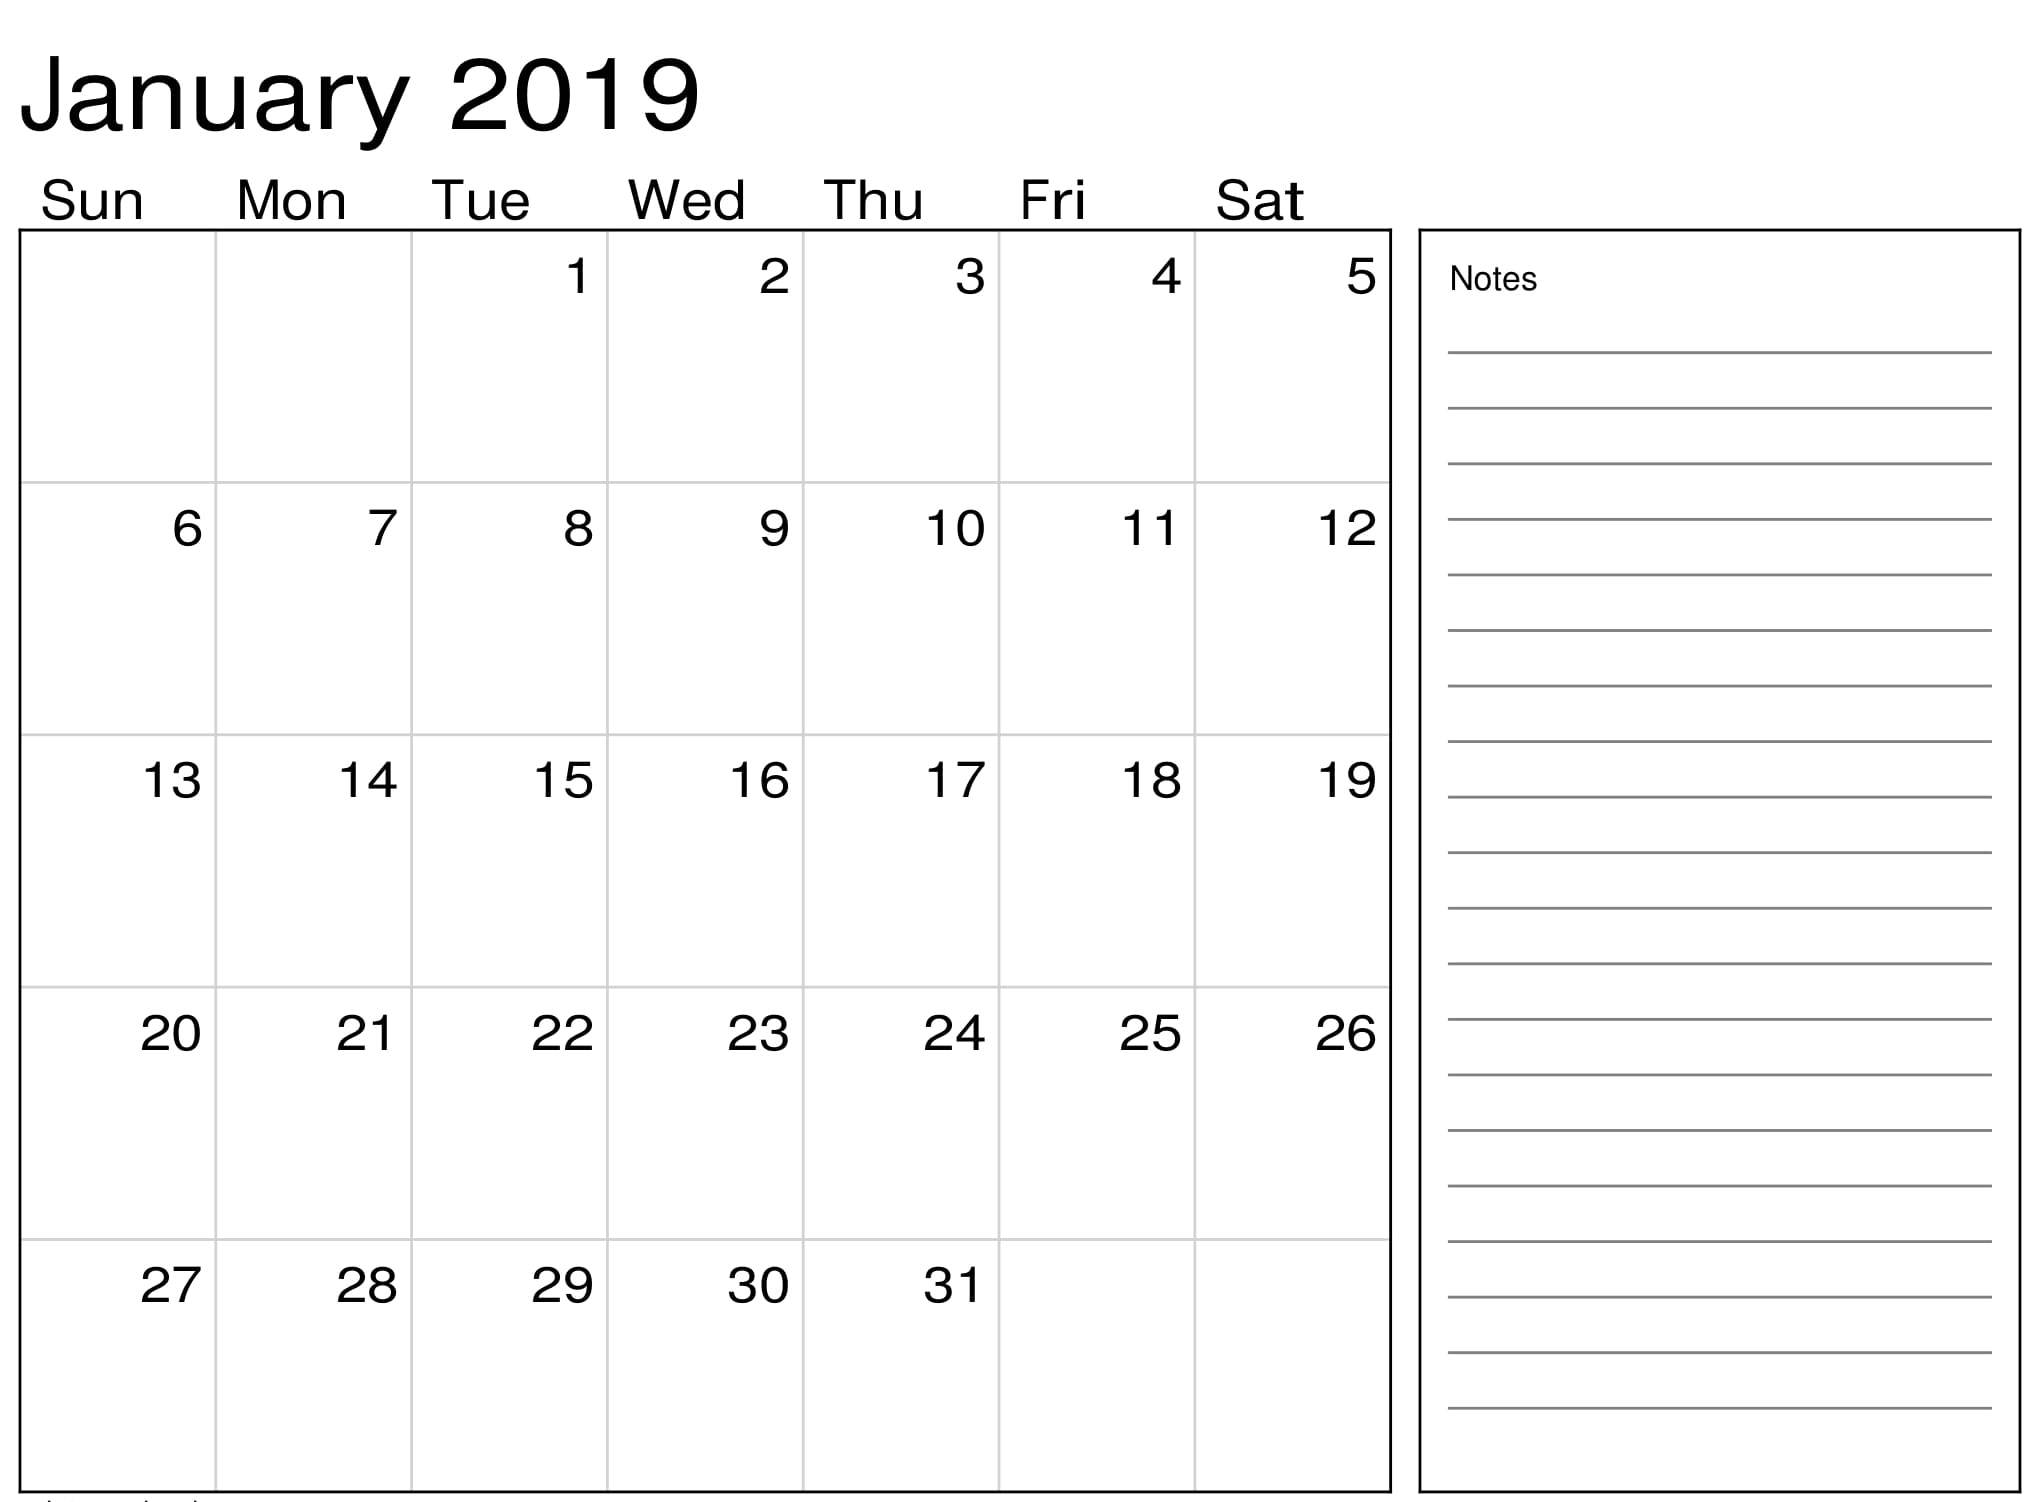 January 2019 Calendar PDF With Notes